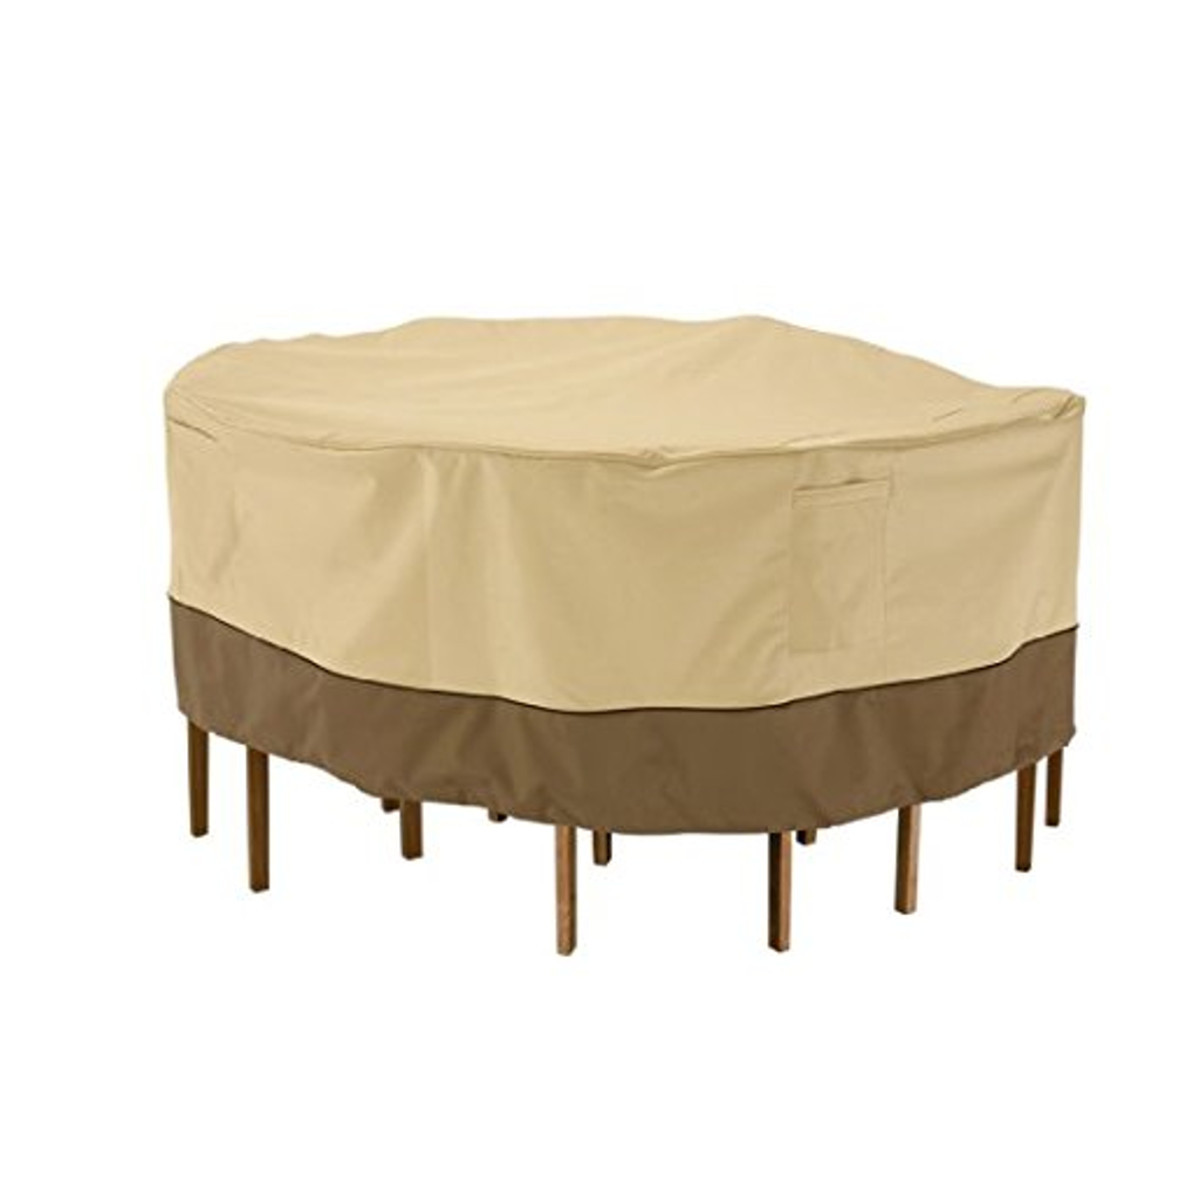 Garden Round Waterproof Table Cover Patio Outdoor Furniture Set Shelter Protection 4